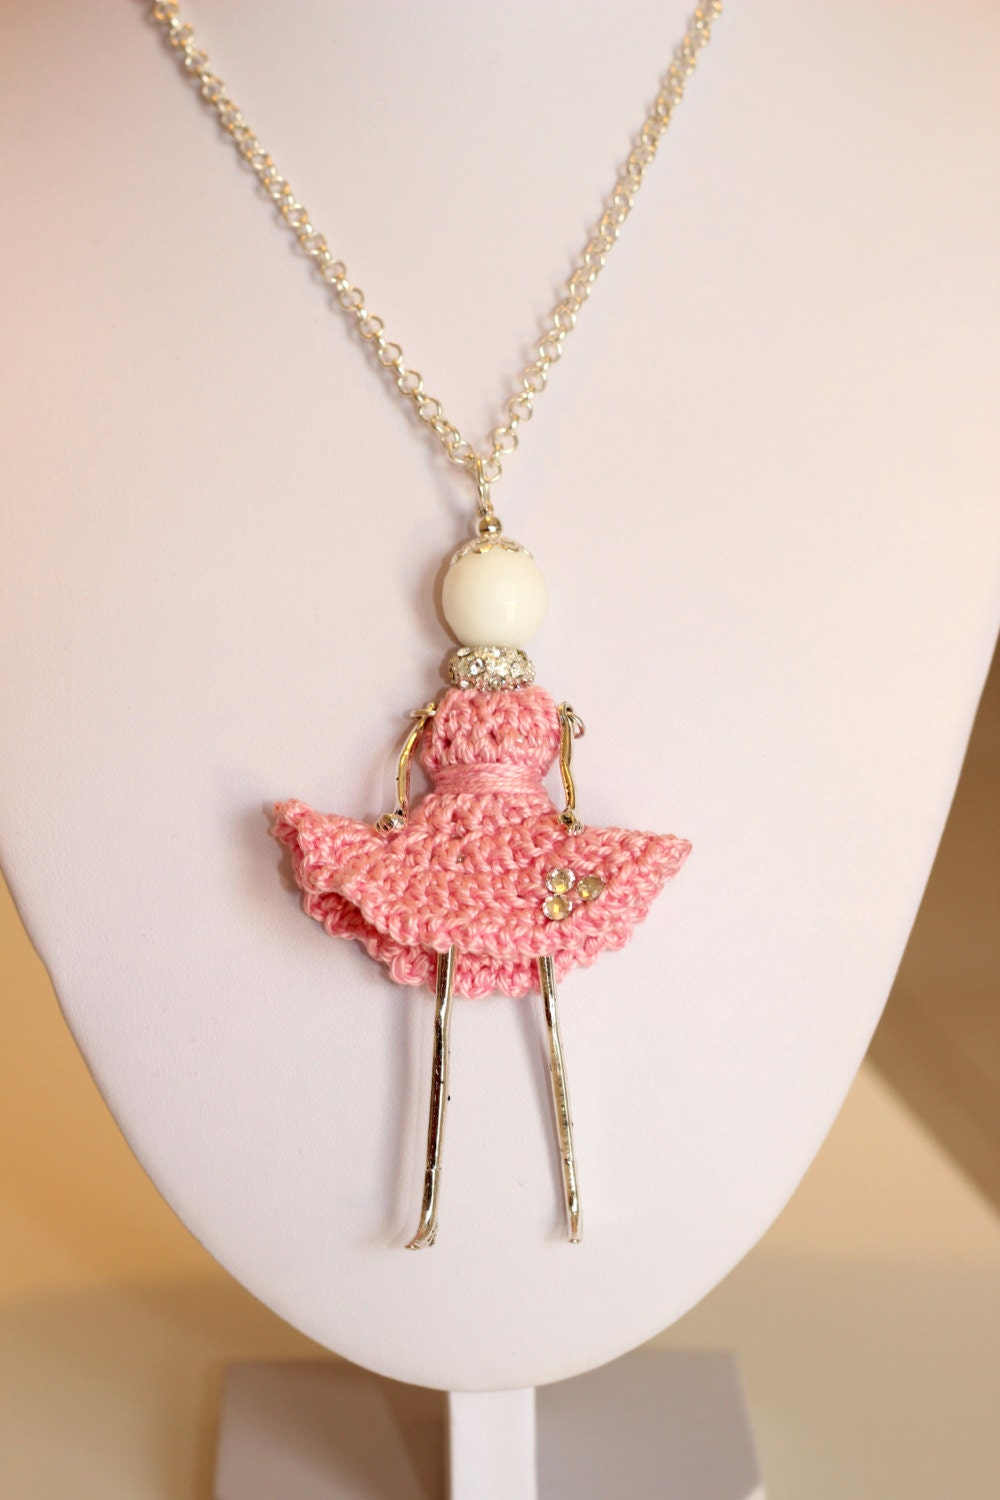 Favoloso Tutorial Collana bambolina dolce Sweet Dolls simil Le ZV62